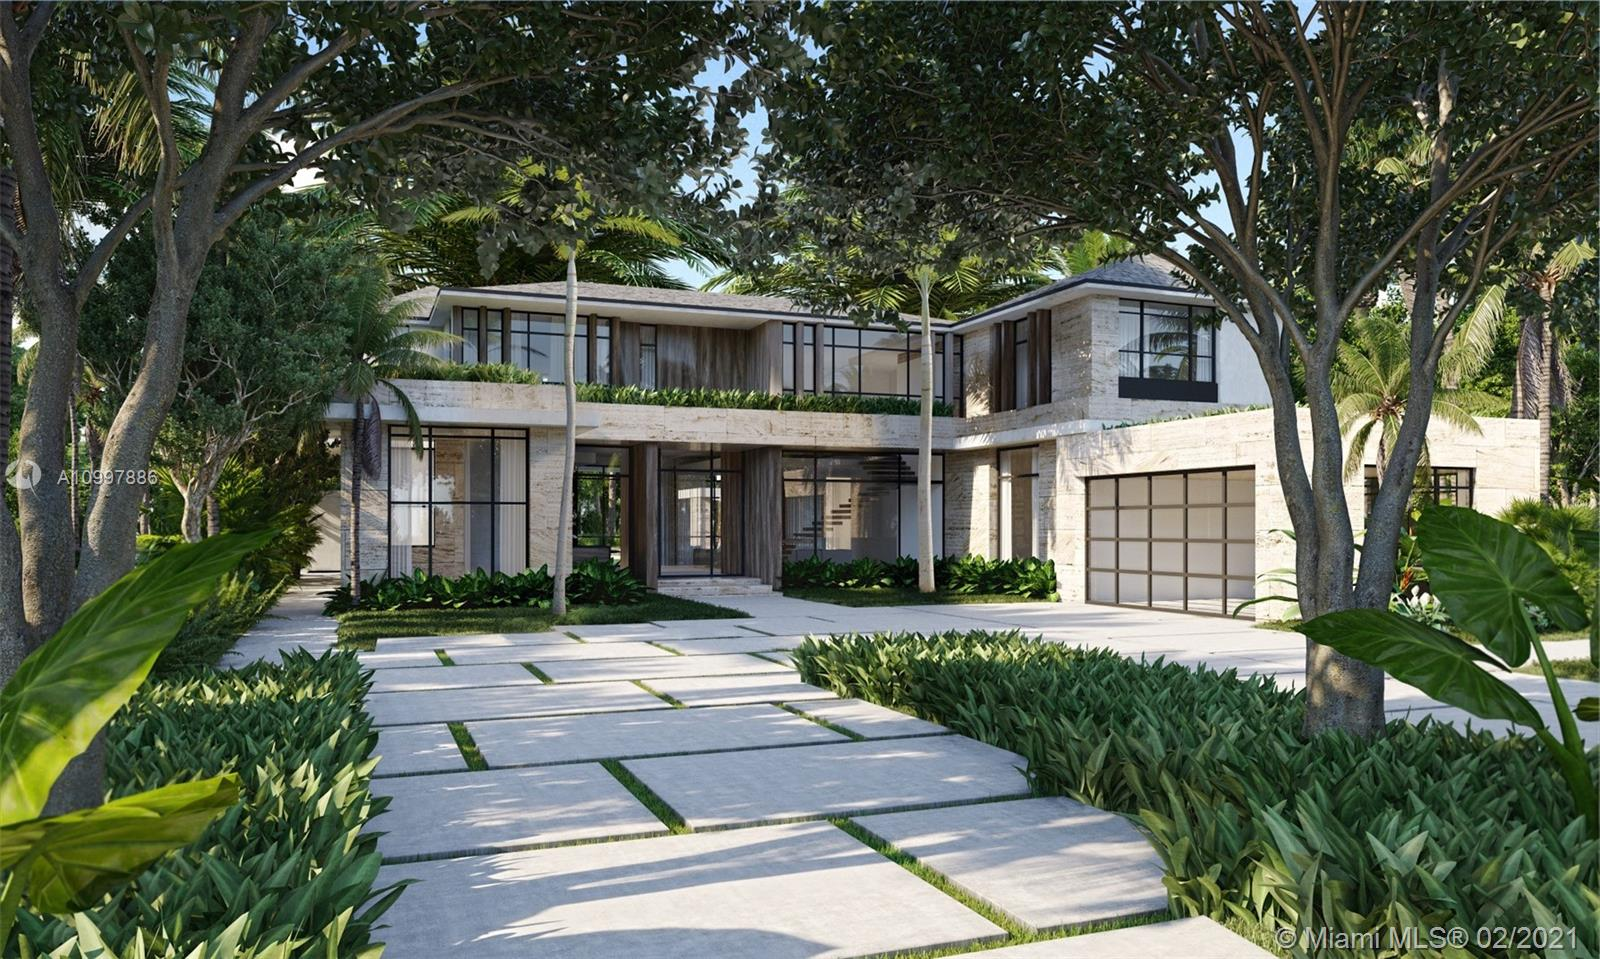 1757 W 27th St Luxury Real Estate